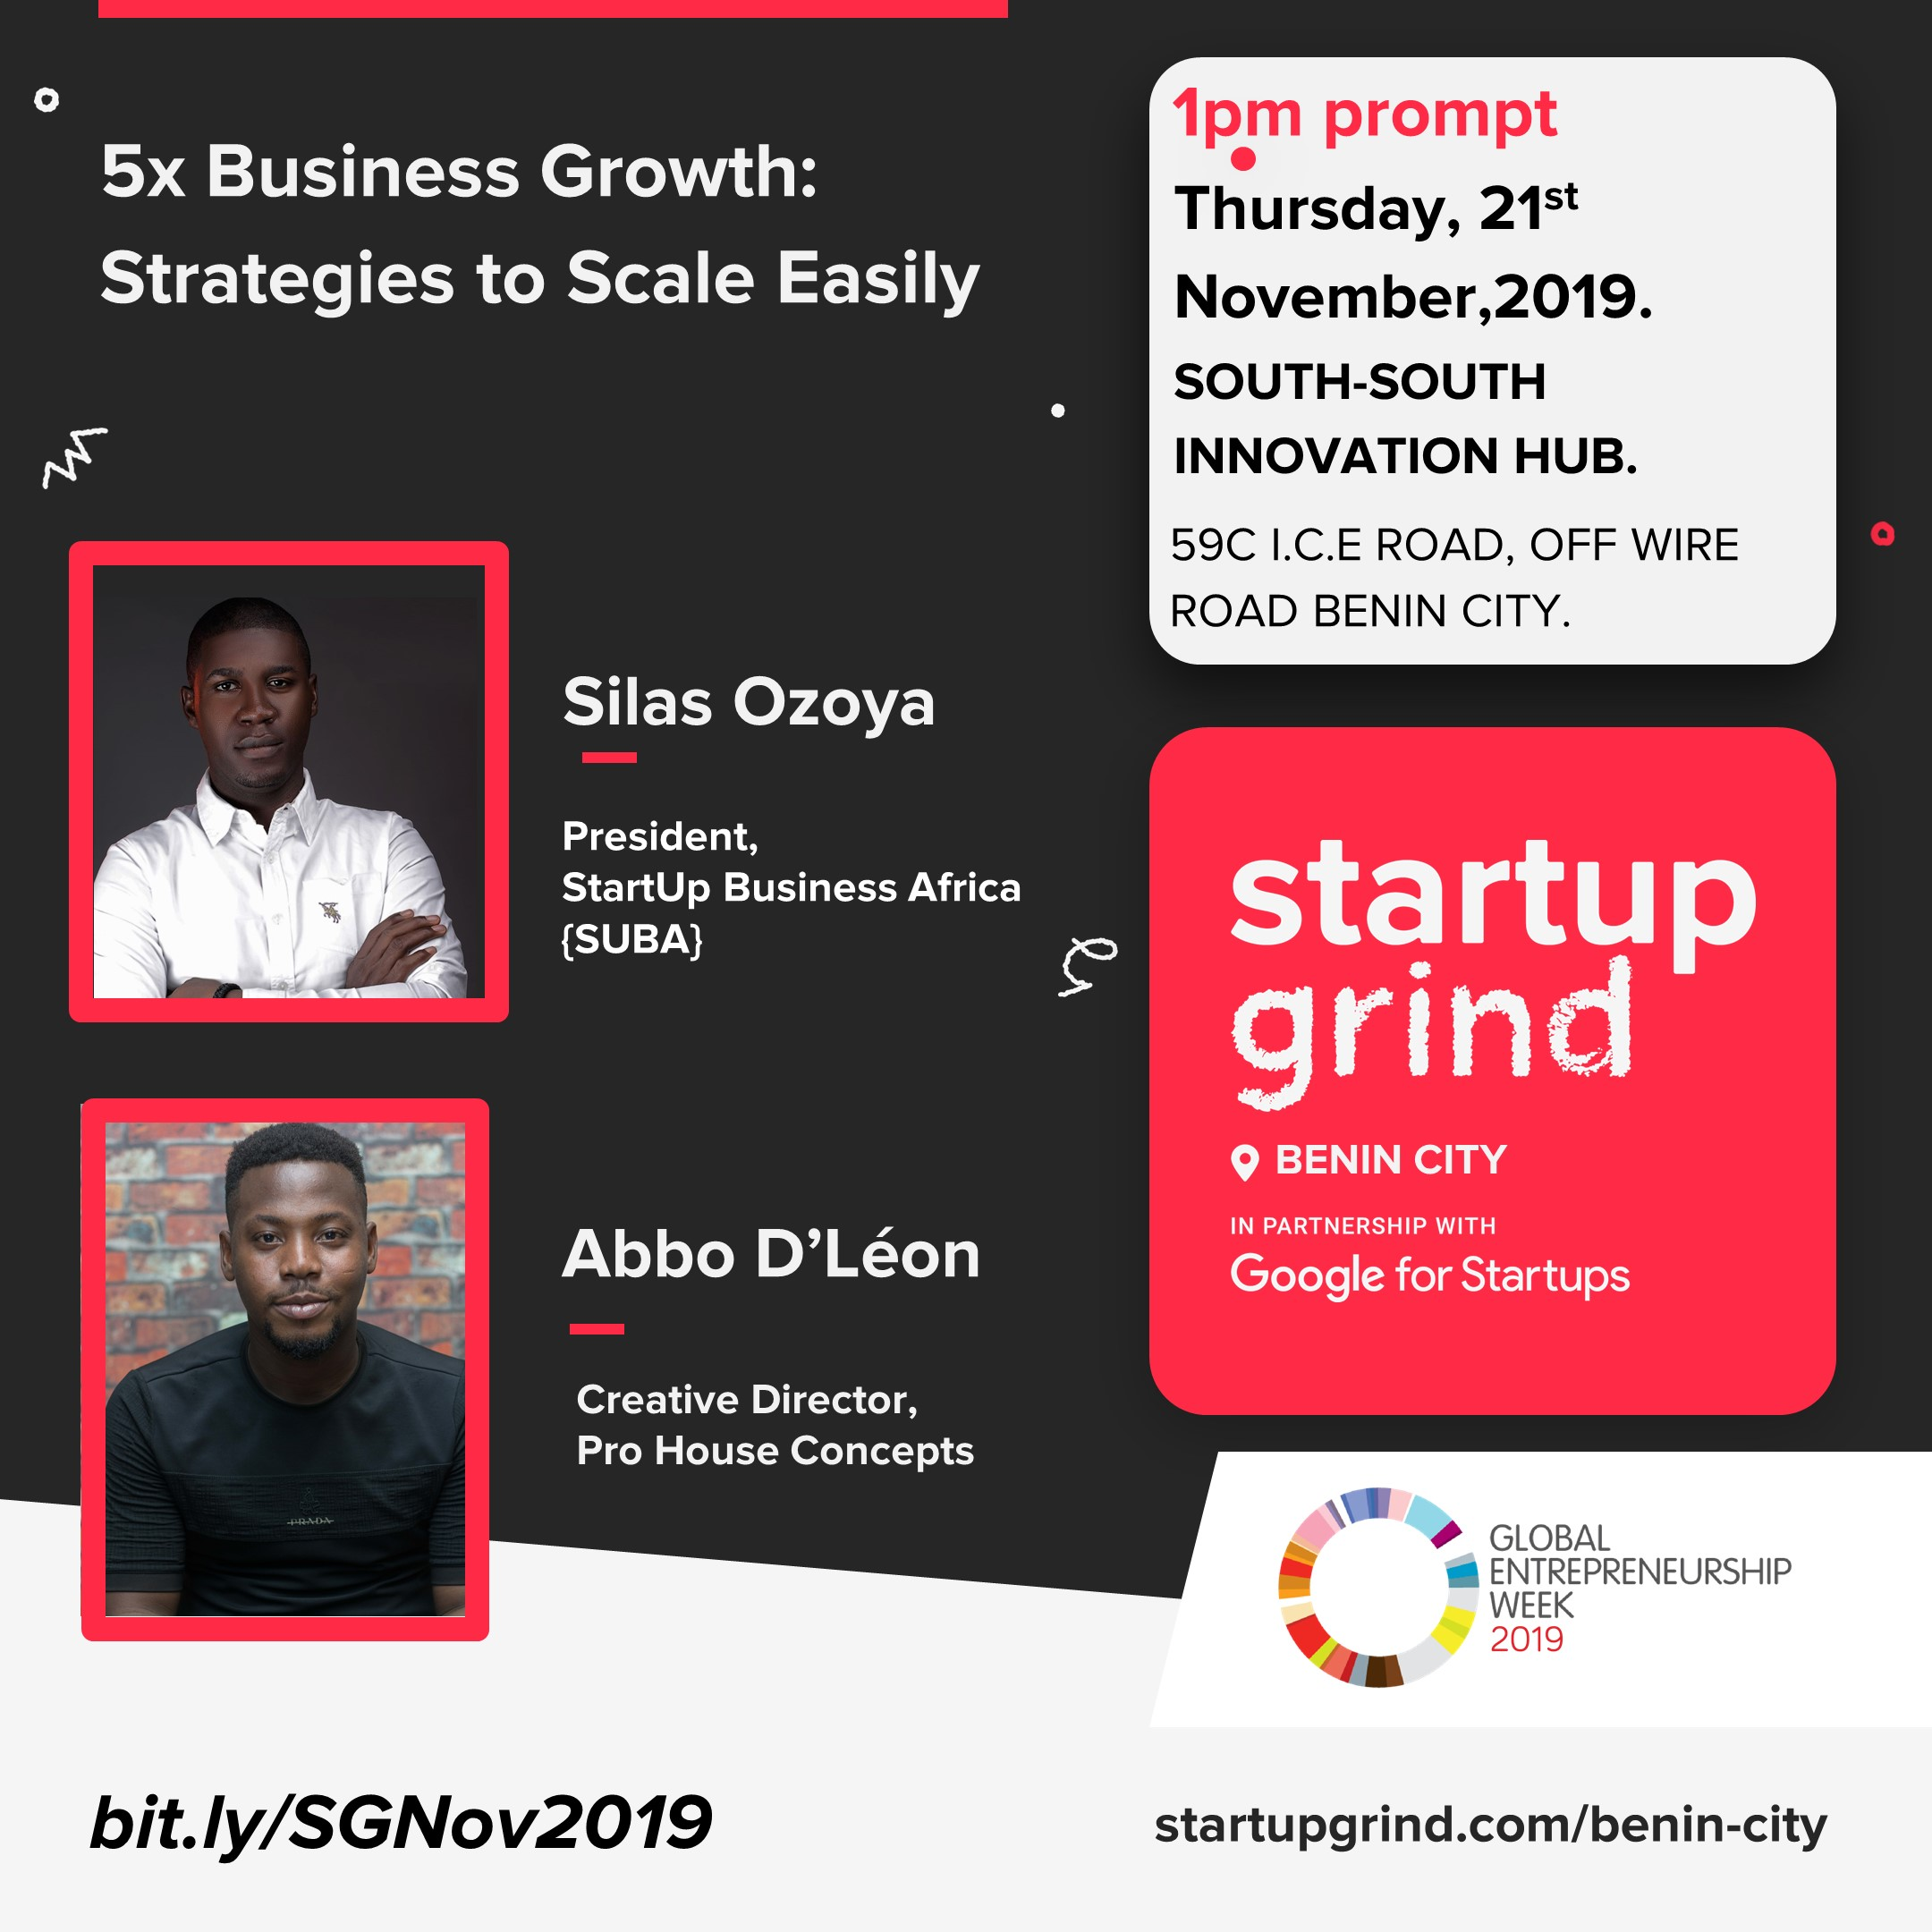 5x Business Growth: Strategies to Scale Easily with Silas Ozoya